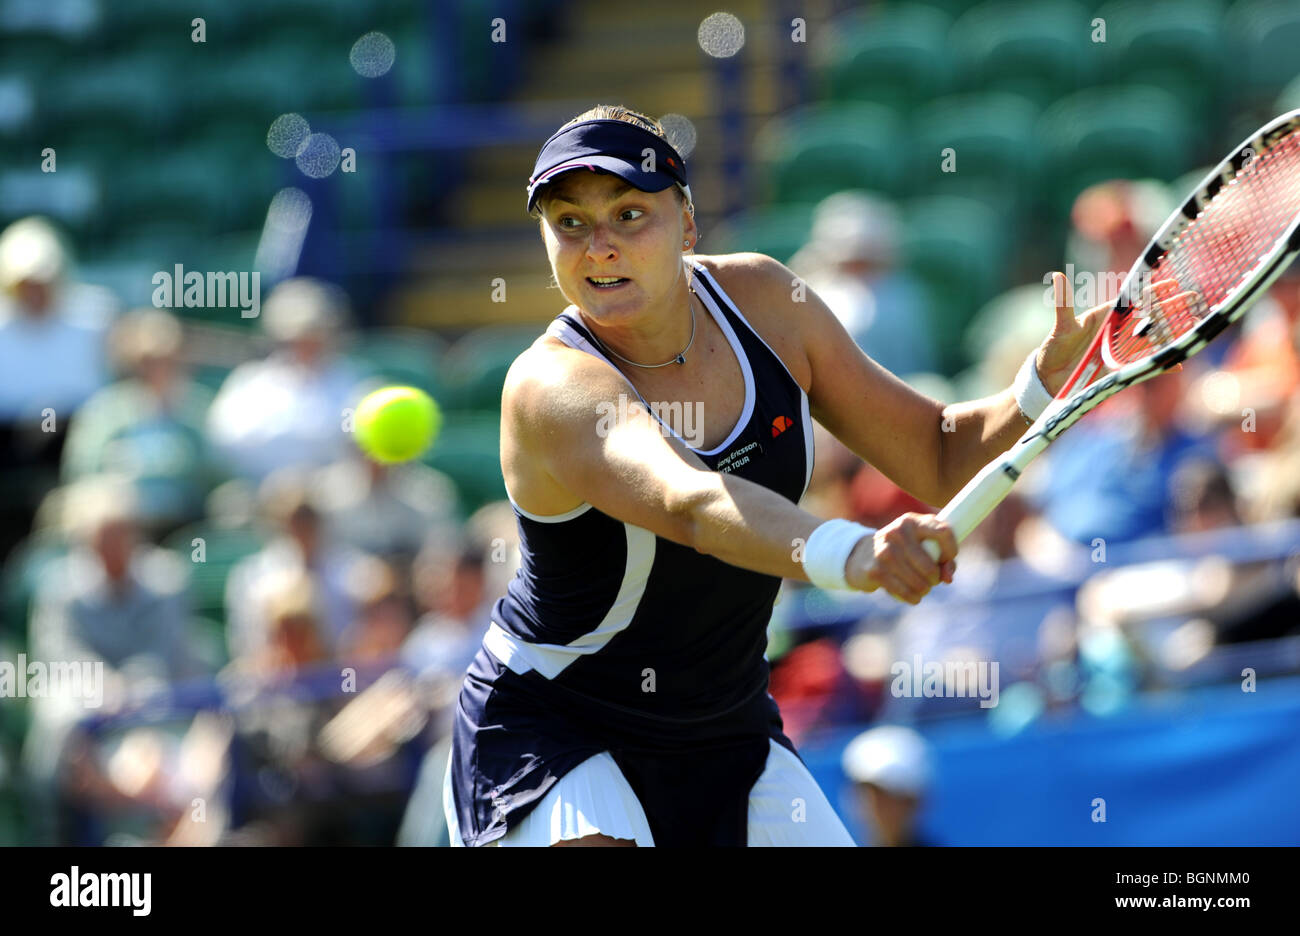 Nadia Petrova in action at the Aegon International 2009 Tennis Championships at Devonshire Park Eastbourne - Stock Image